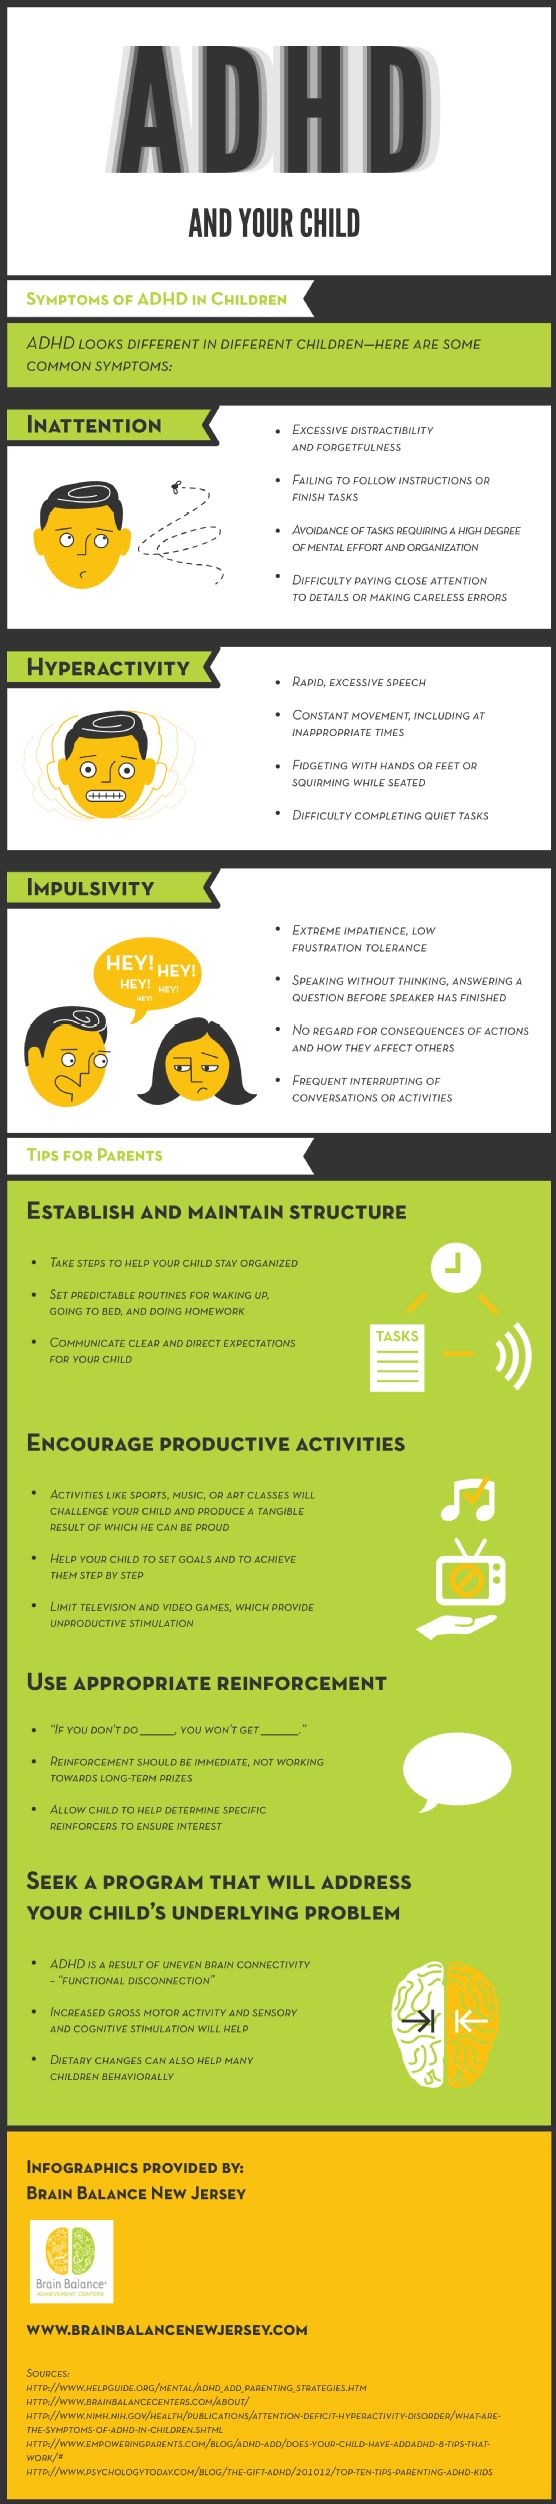 Hyperactivity displayed in rapid, excessive speech, constant movement or fidgeting, or difficulty completing quiet tasks could be symptoms of ADHD. This infographic from a learning center for ADHD in New Jersey offers more information on learning disorders.